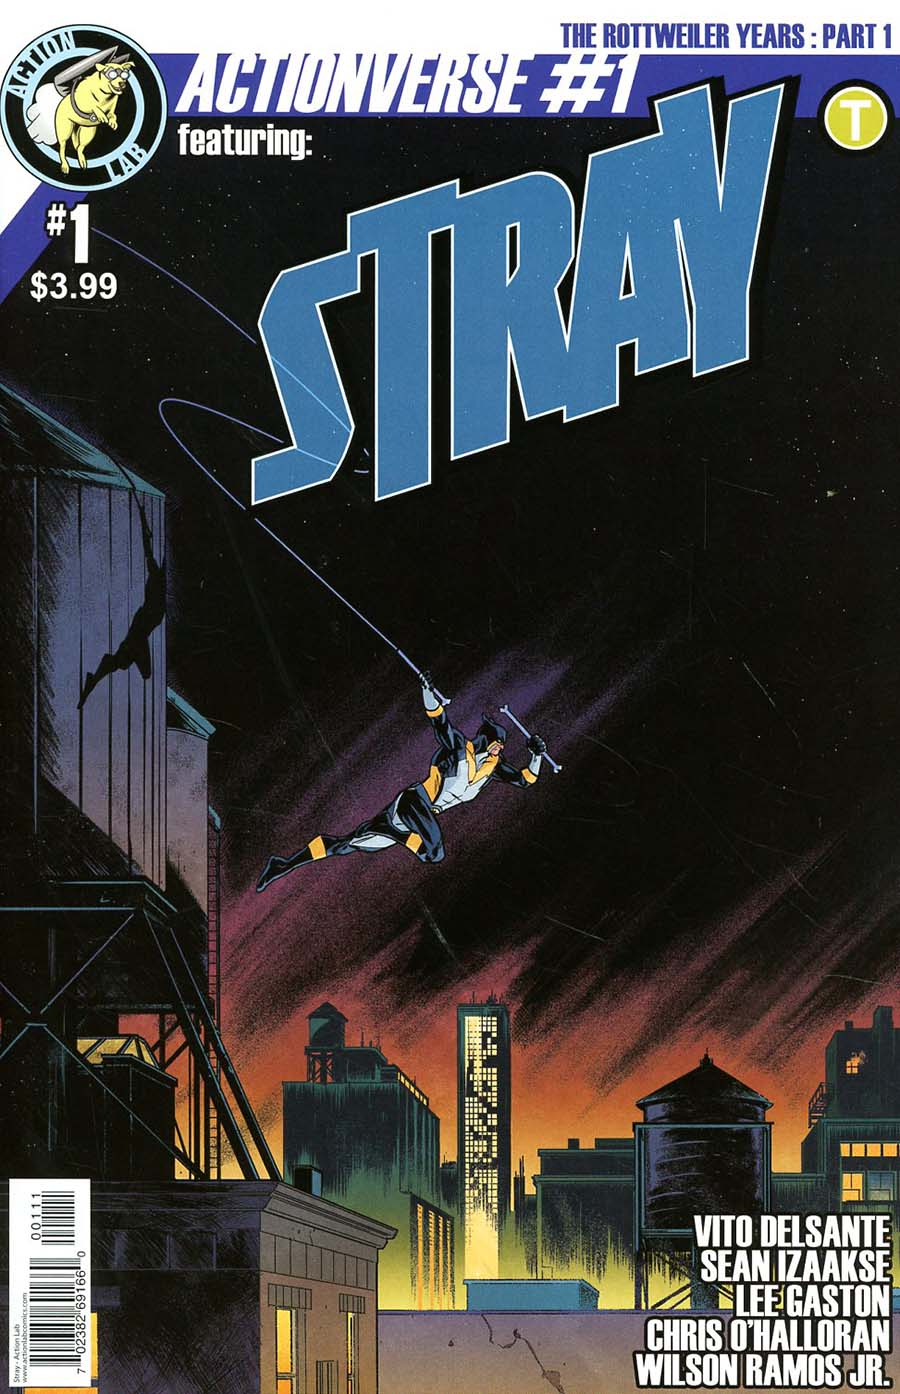 Actionverse Vol 2 #1 Stray Cover A Regular Sean Izaakse Cover